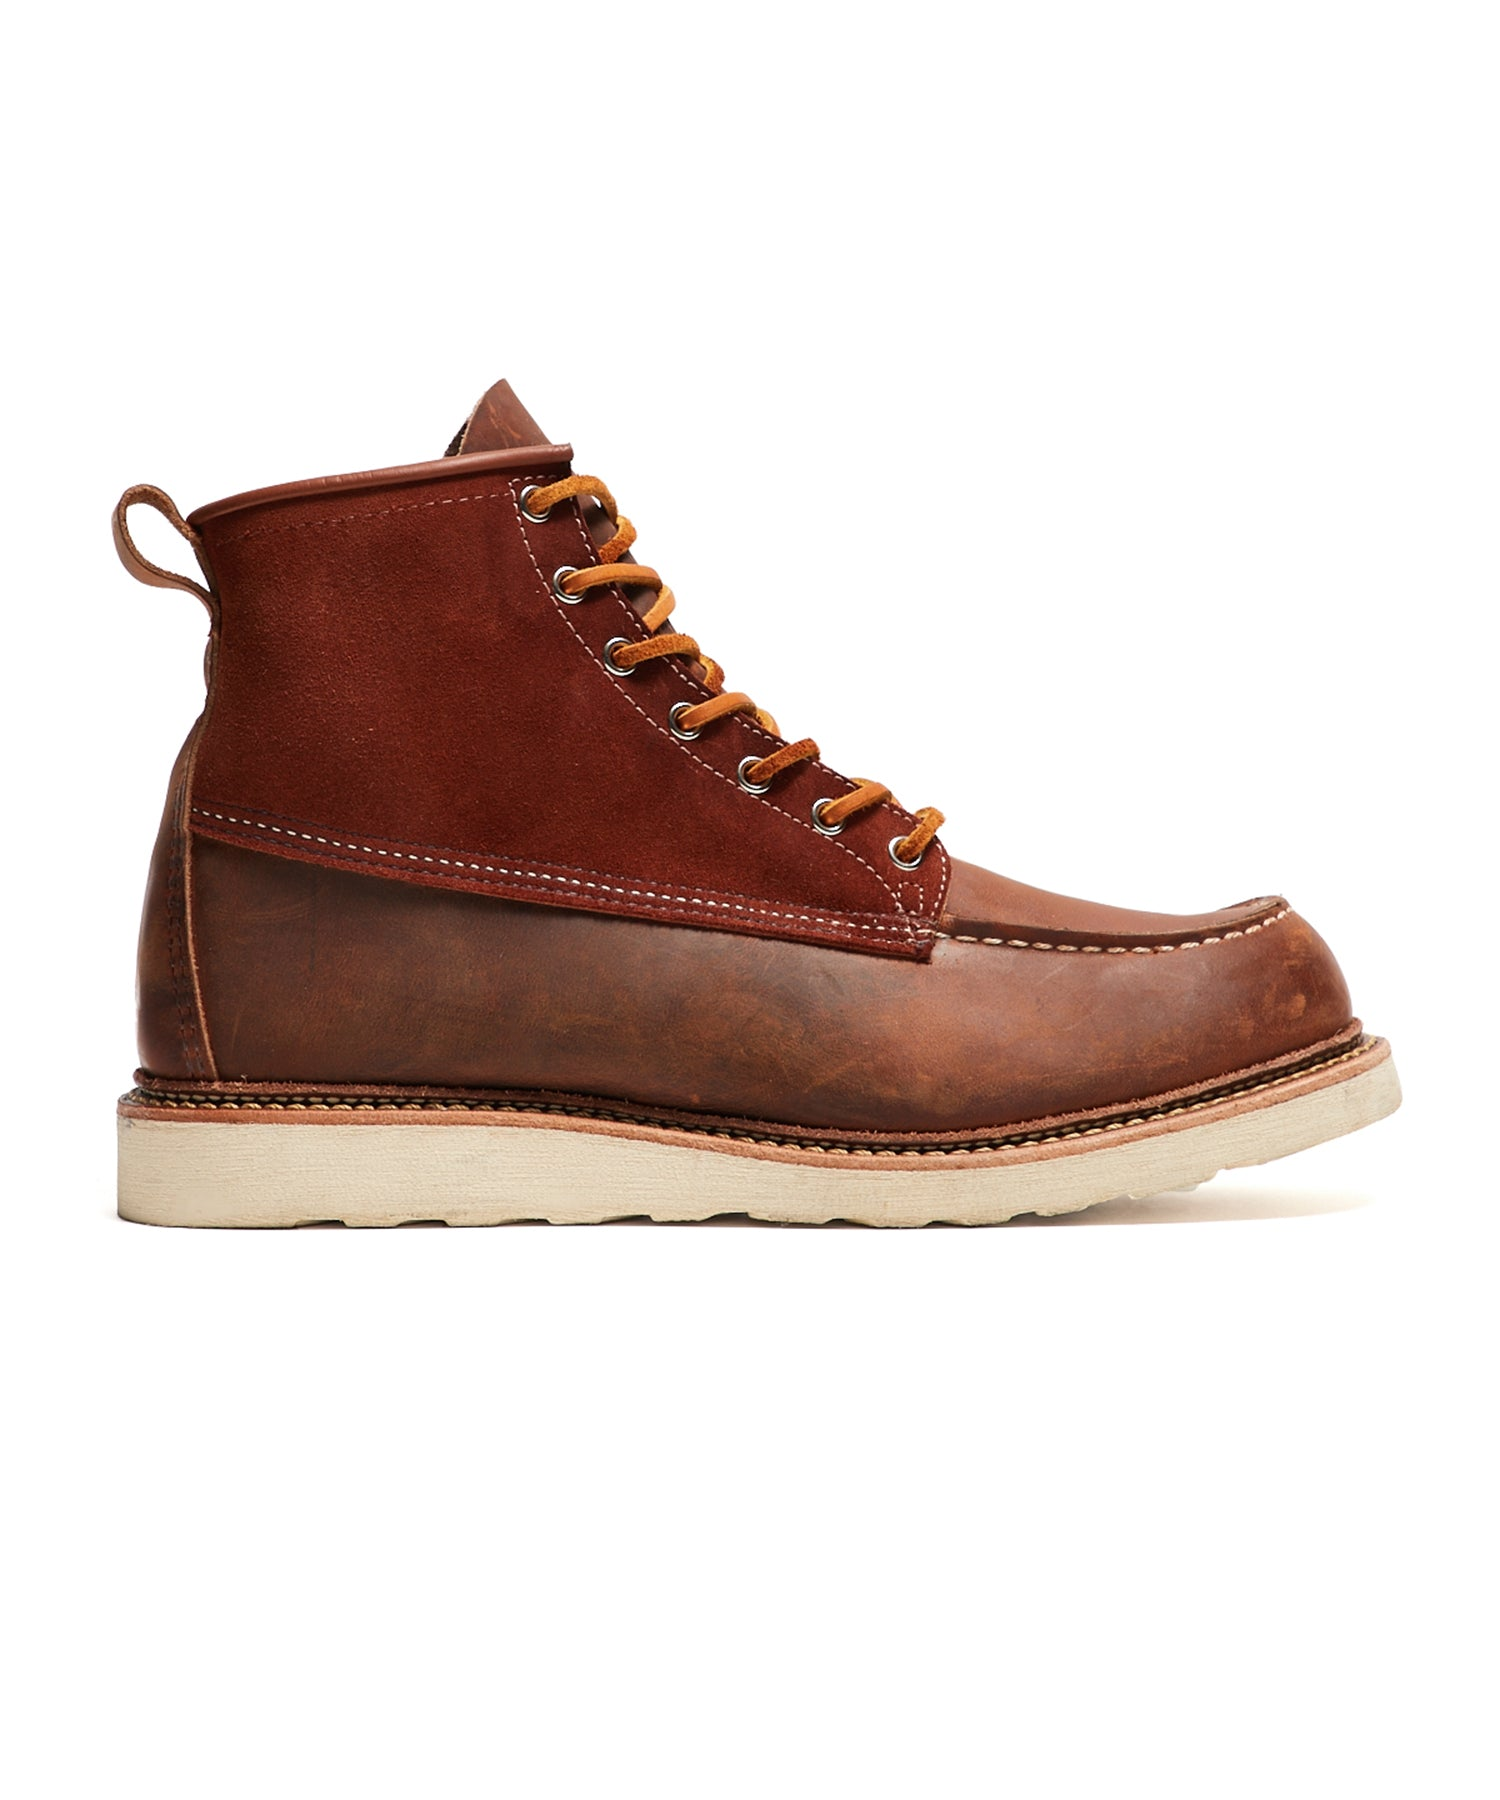 Red Wing Shoes - Todd Snyder